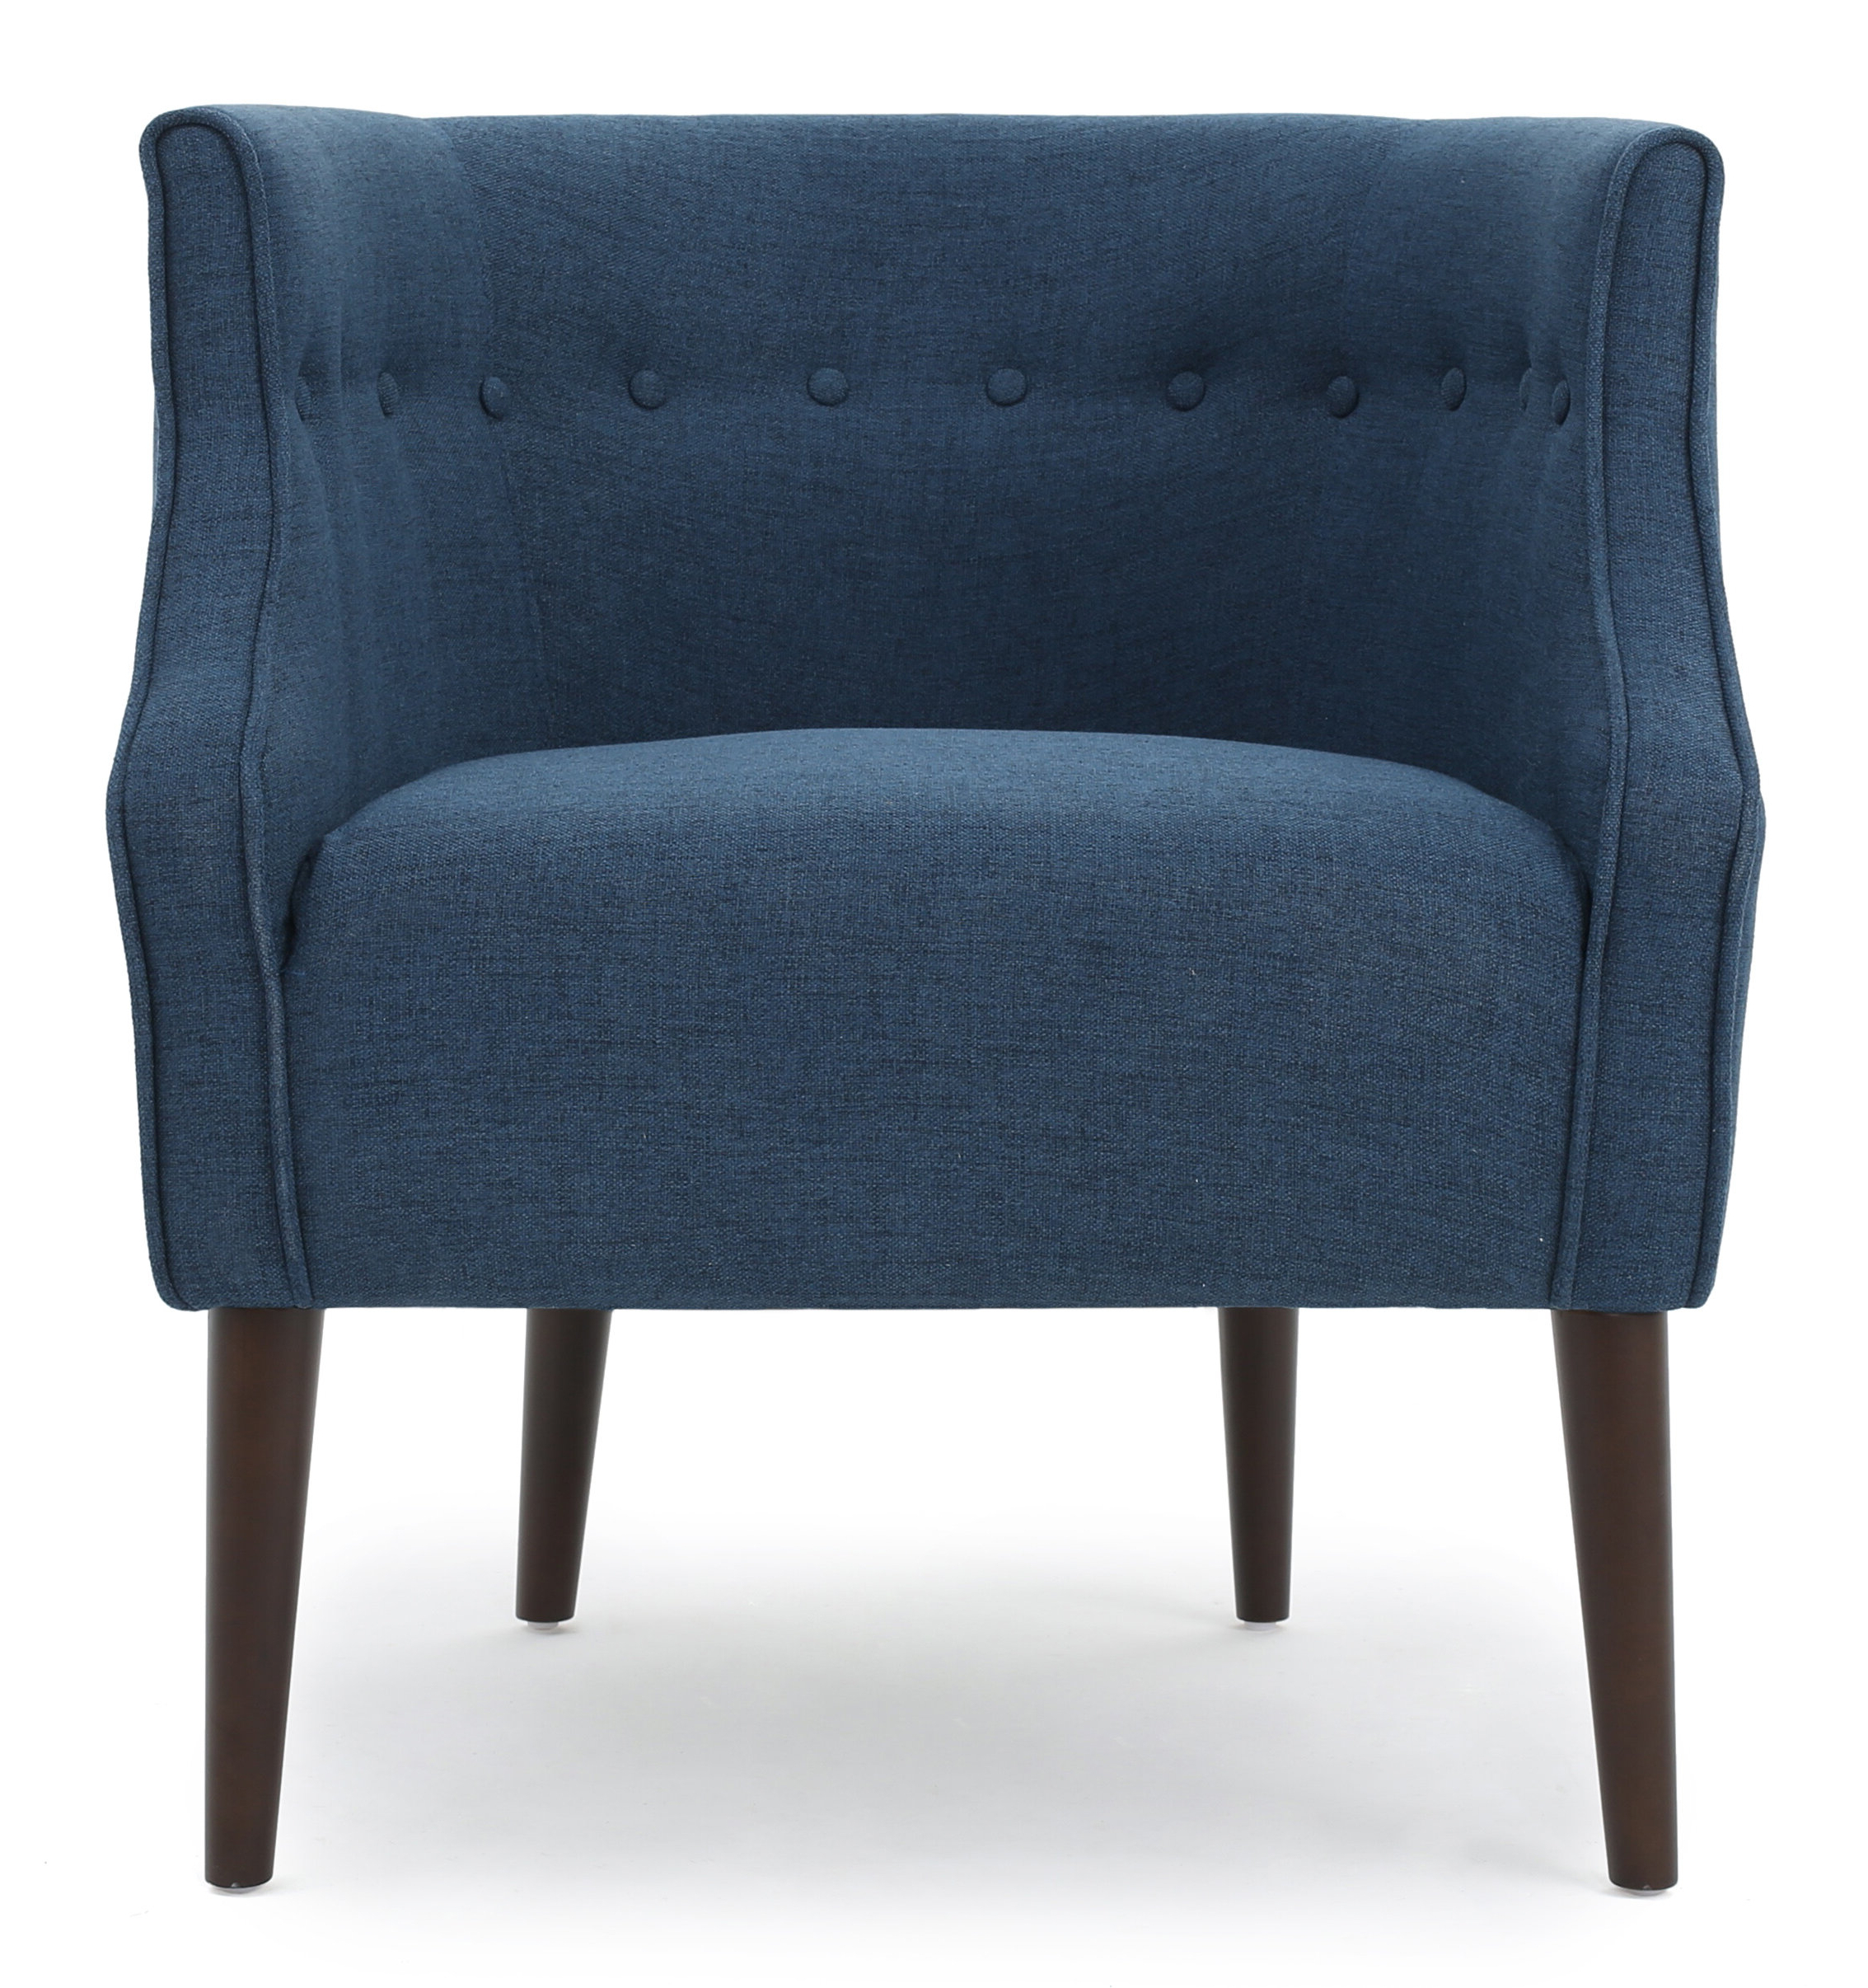 Popular Claudel Polyester Blend Barrel Chairs With Barrel Mid Century Modern Accent Chairs You'll Love In (View 5 of 20)